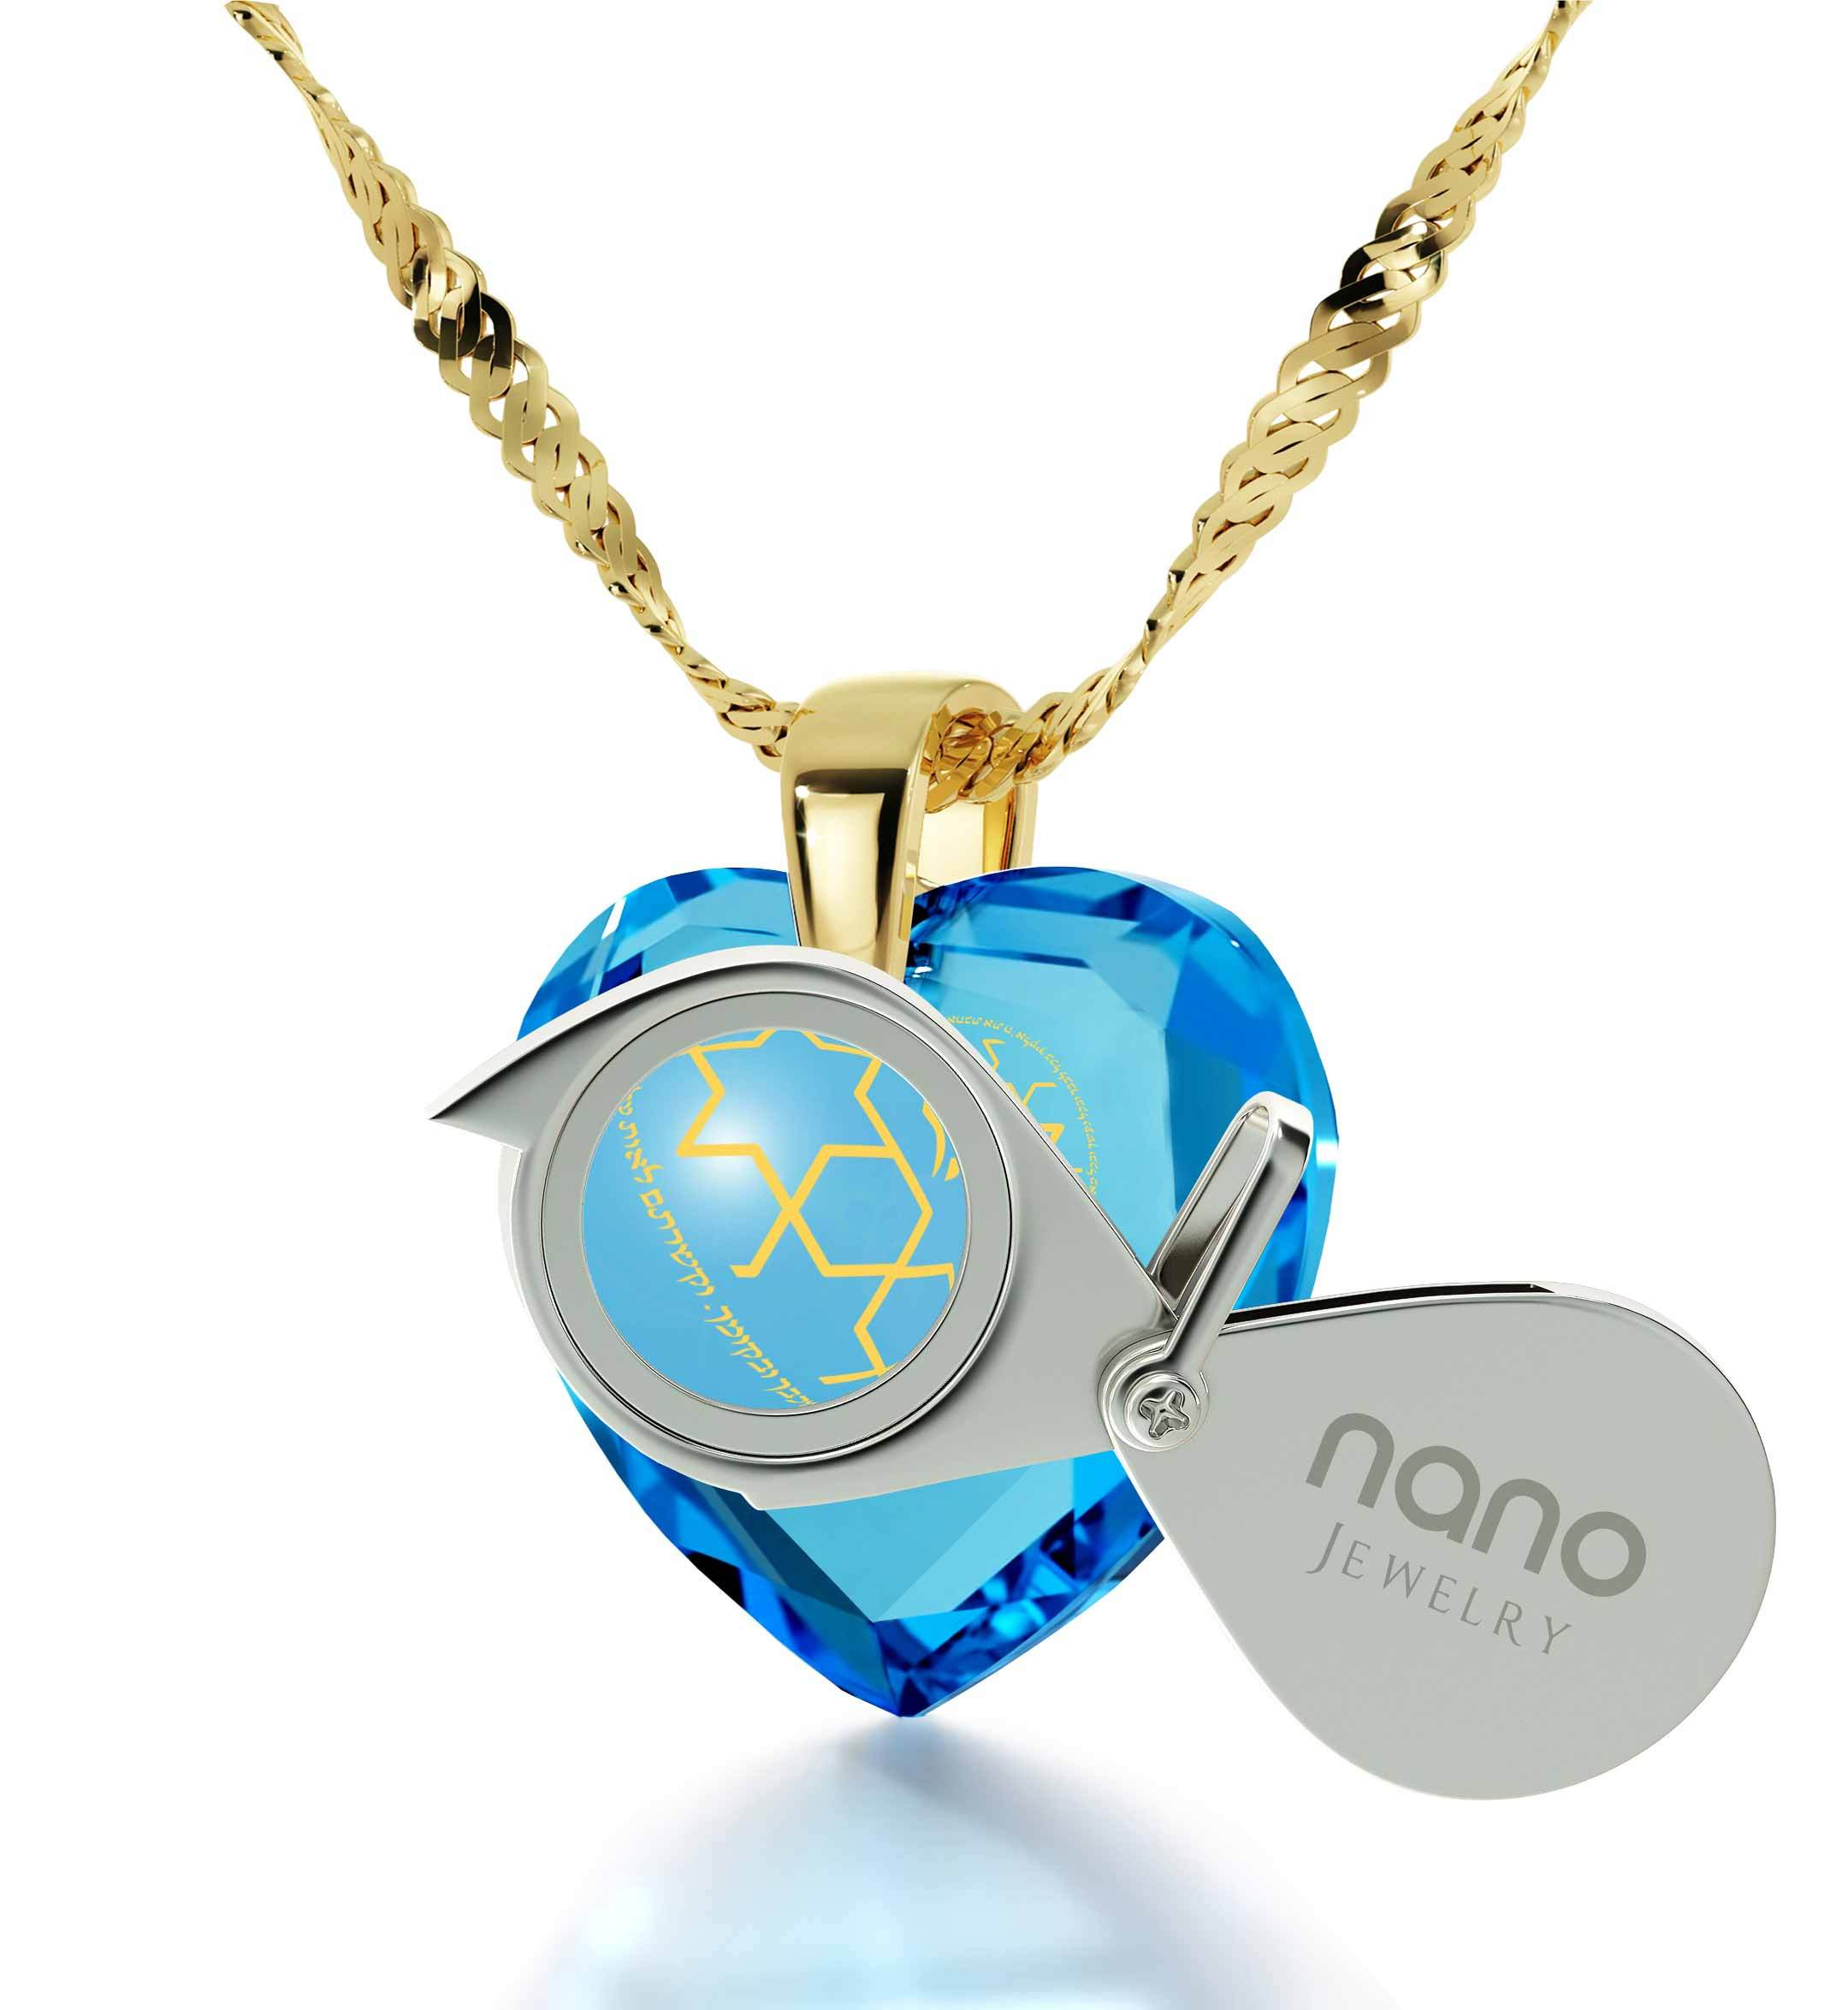 """Shema Yisrael"" Engraved in 24k, Jewish Necklace with Blue Topaz Stone, Religious Gifts for Women"